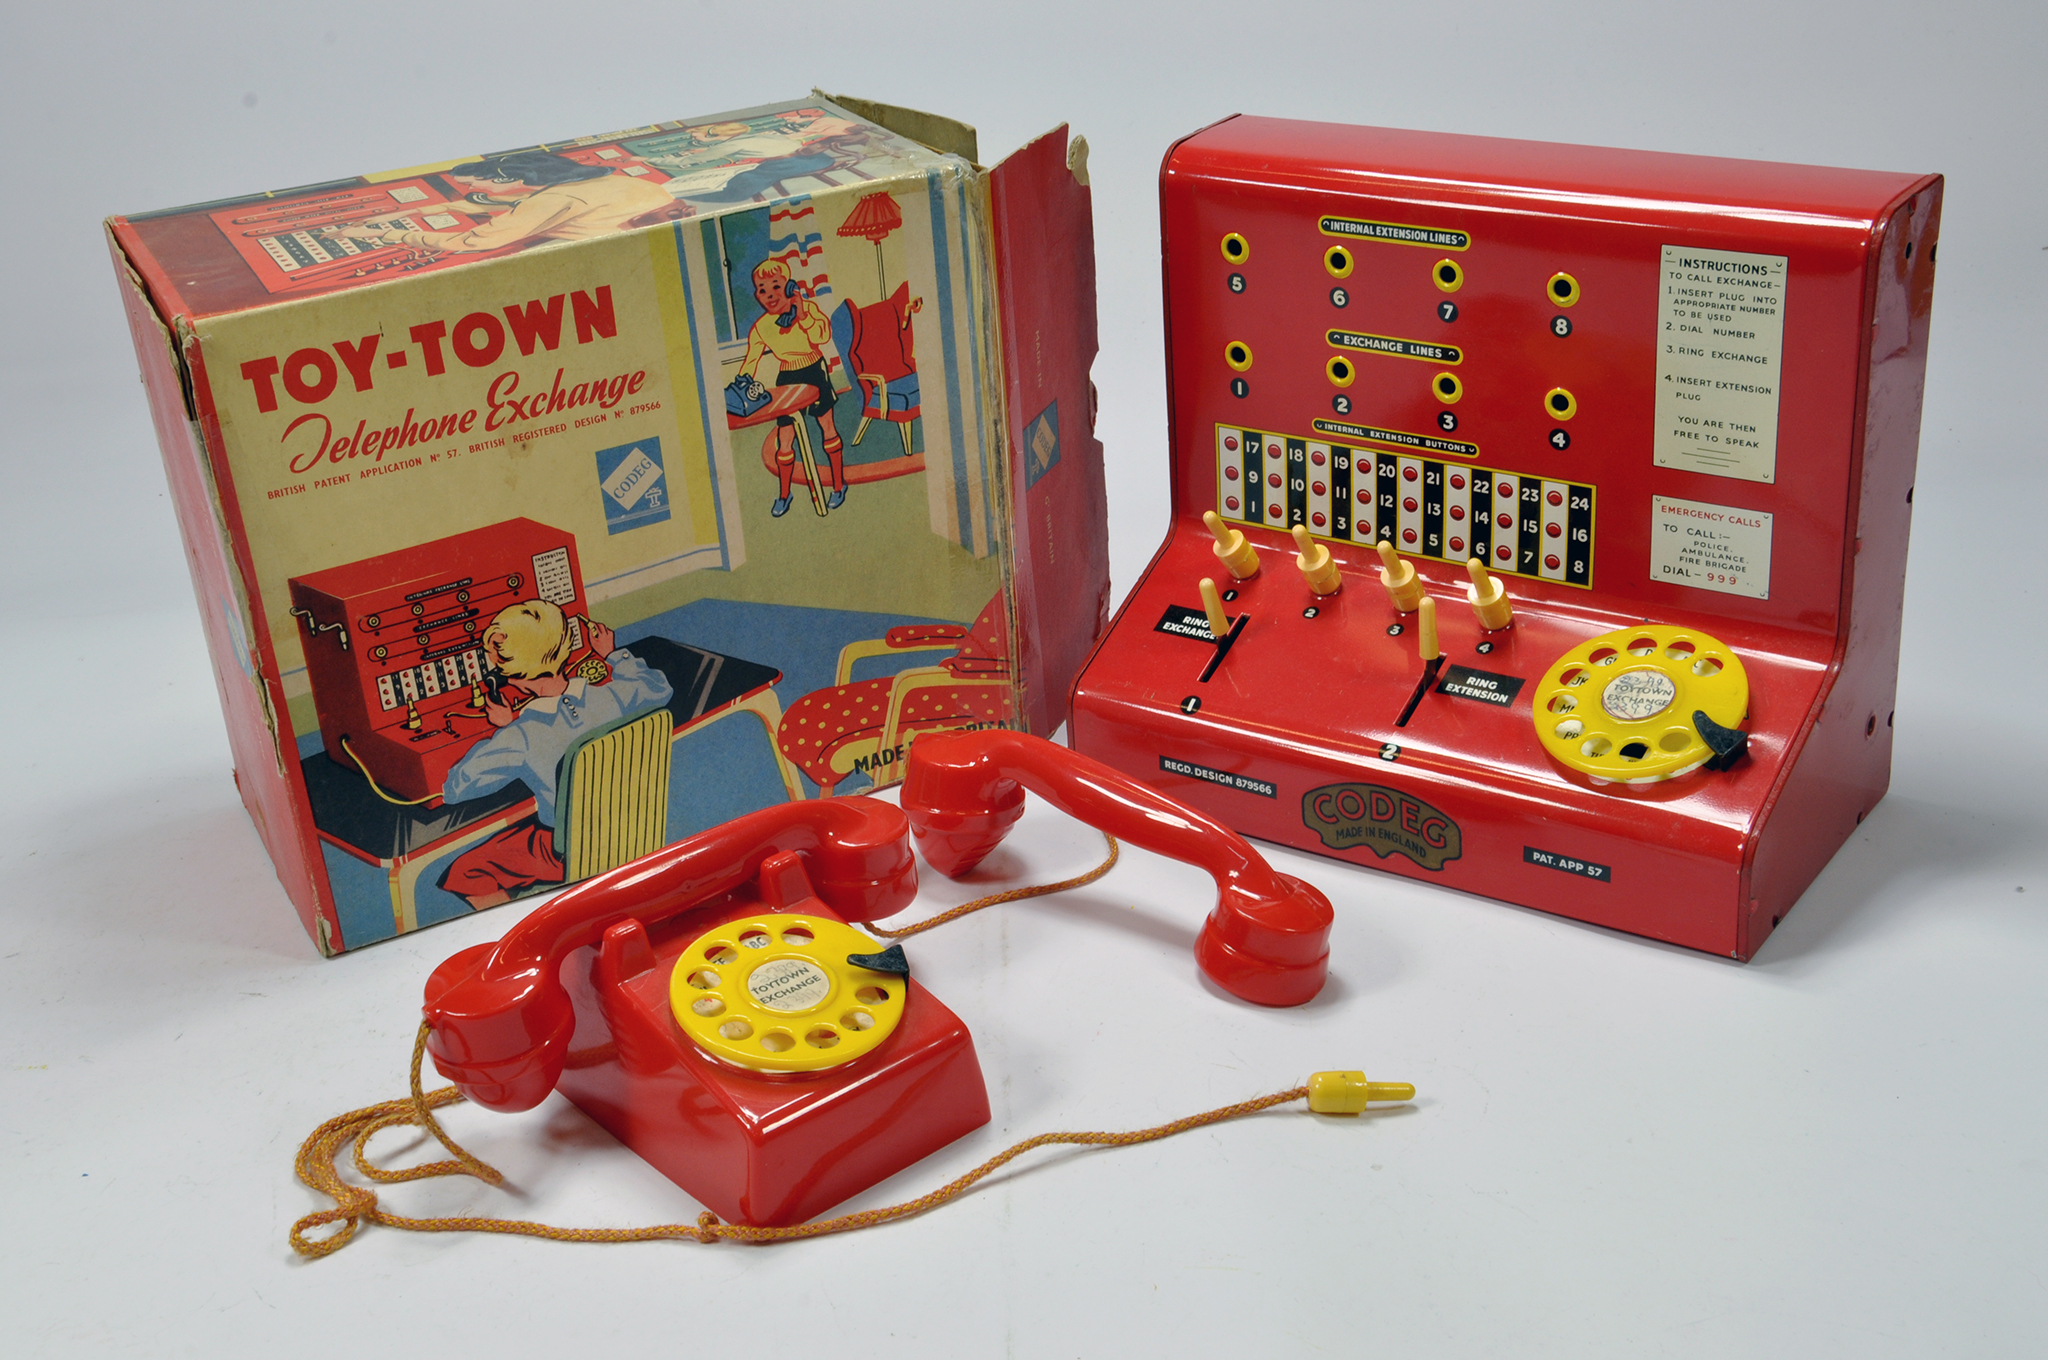 Lot 1179 - A Codeg Toy Town Telephone Exchange. This well preserved issue appears complete and comes with